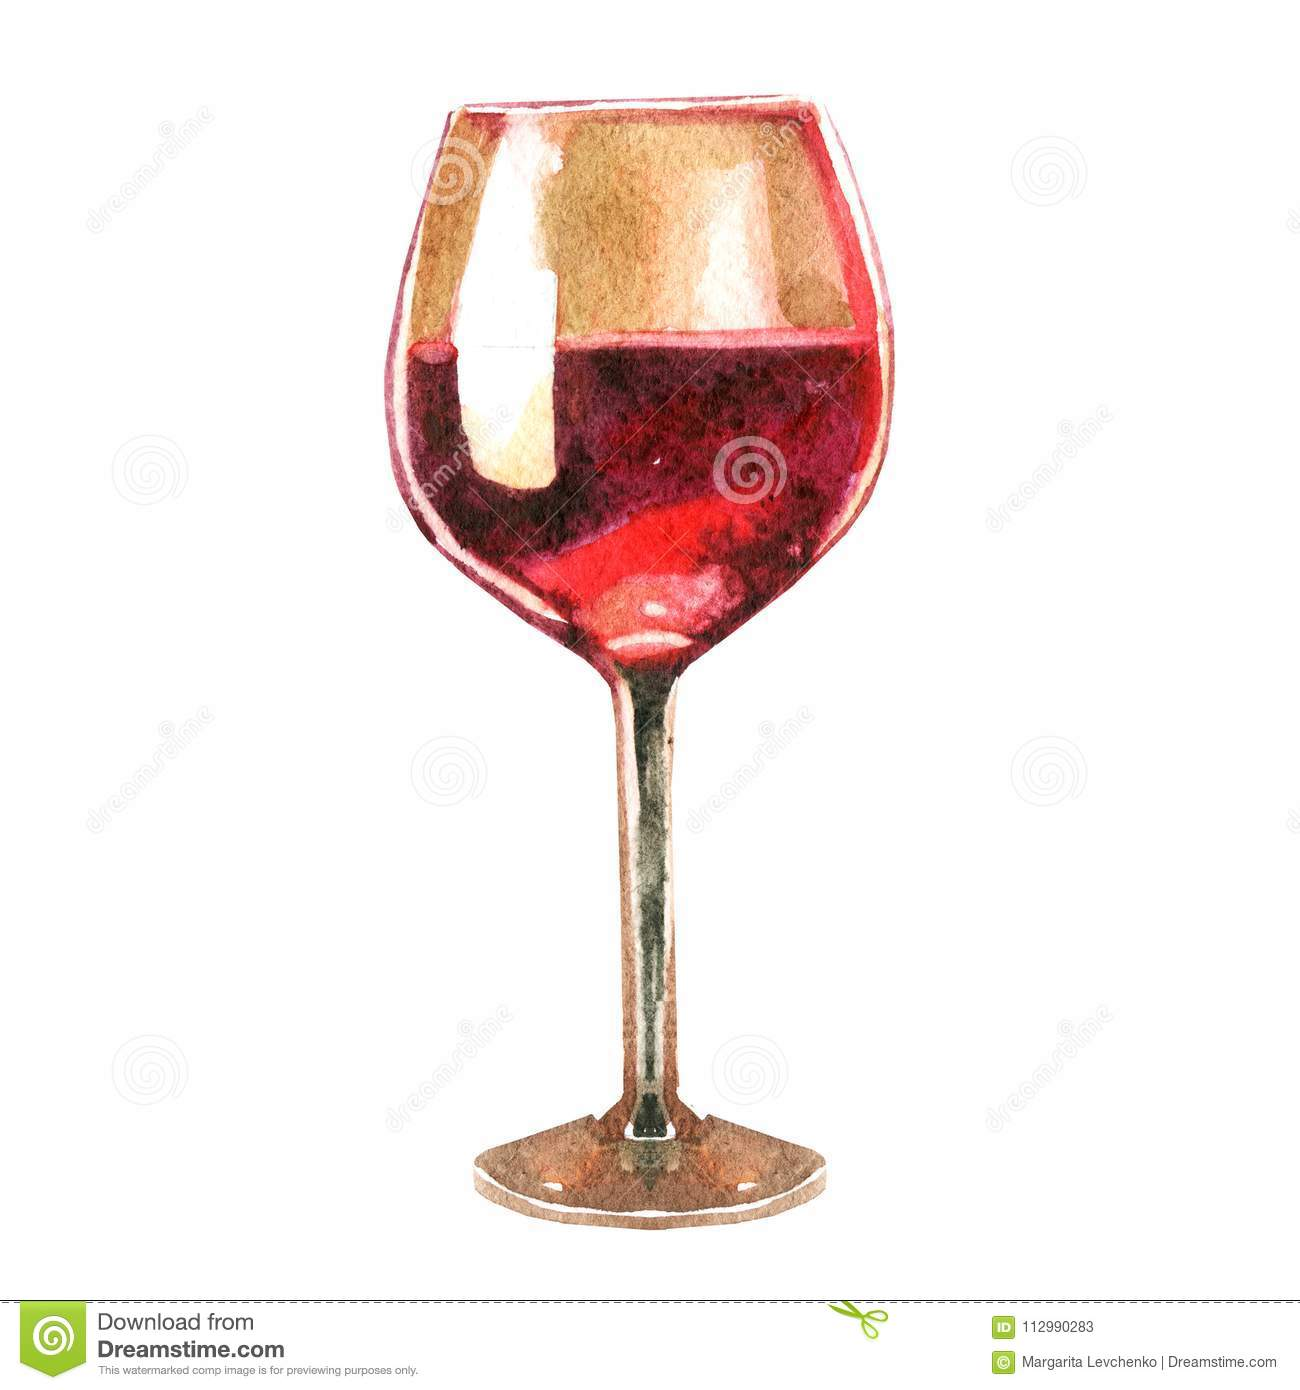 Watercolor illustration. Image of a glass of wine.